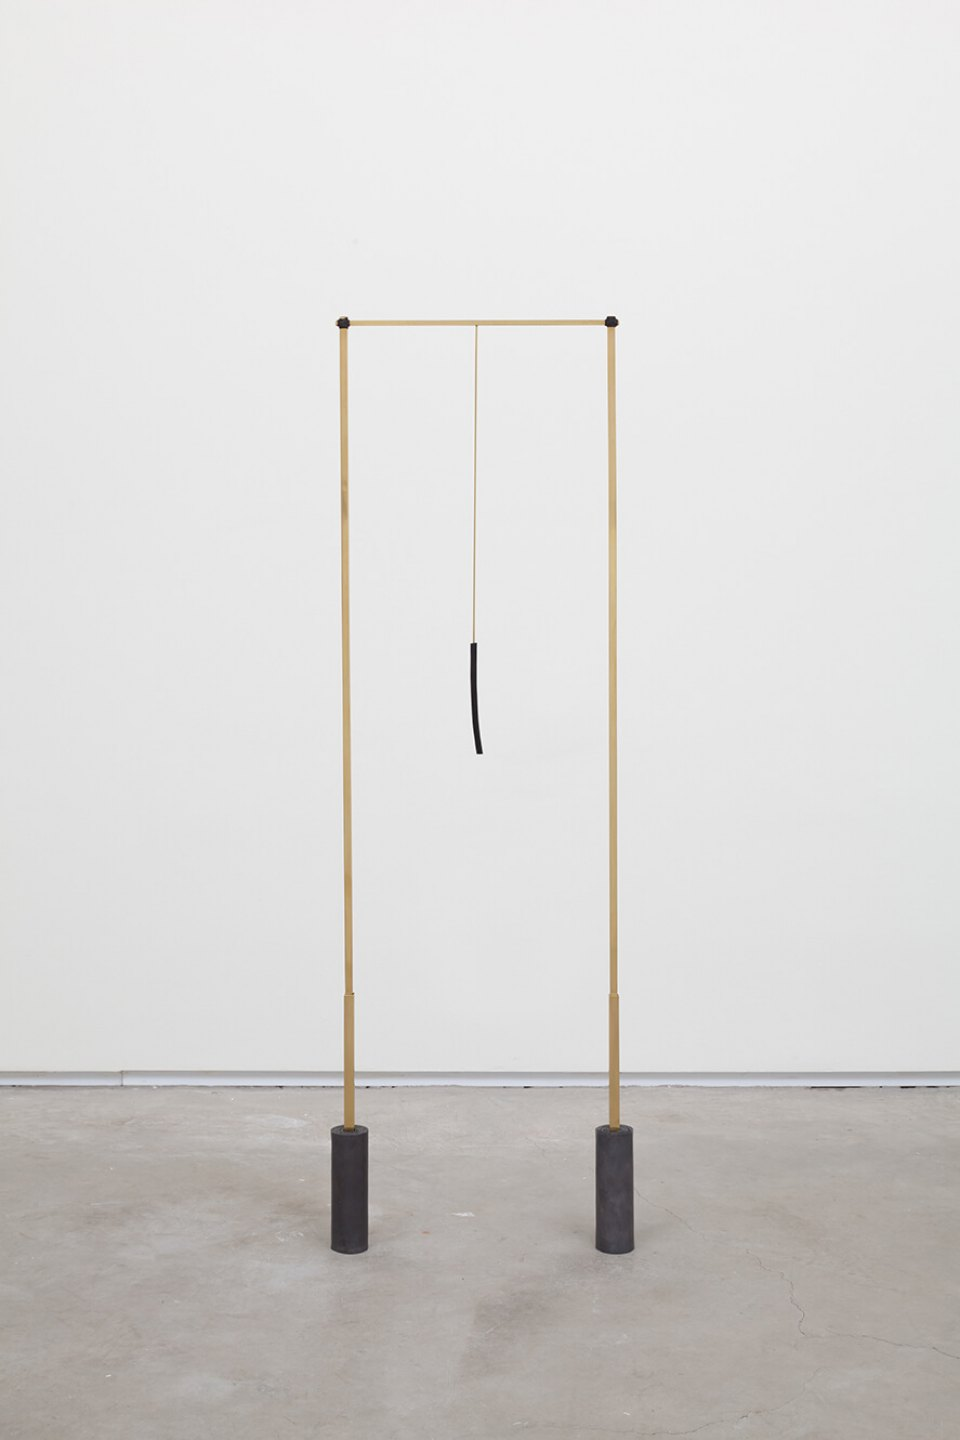 Paloma Bosquê, <em>Posts</em>, 2016, lead sheet, brass rods and mineral coal, 115,5 × 35 × 4,5 cm - Mendes Wood DM